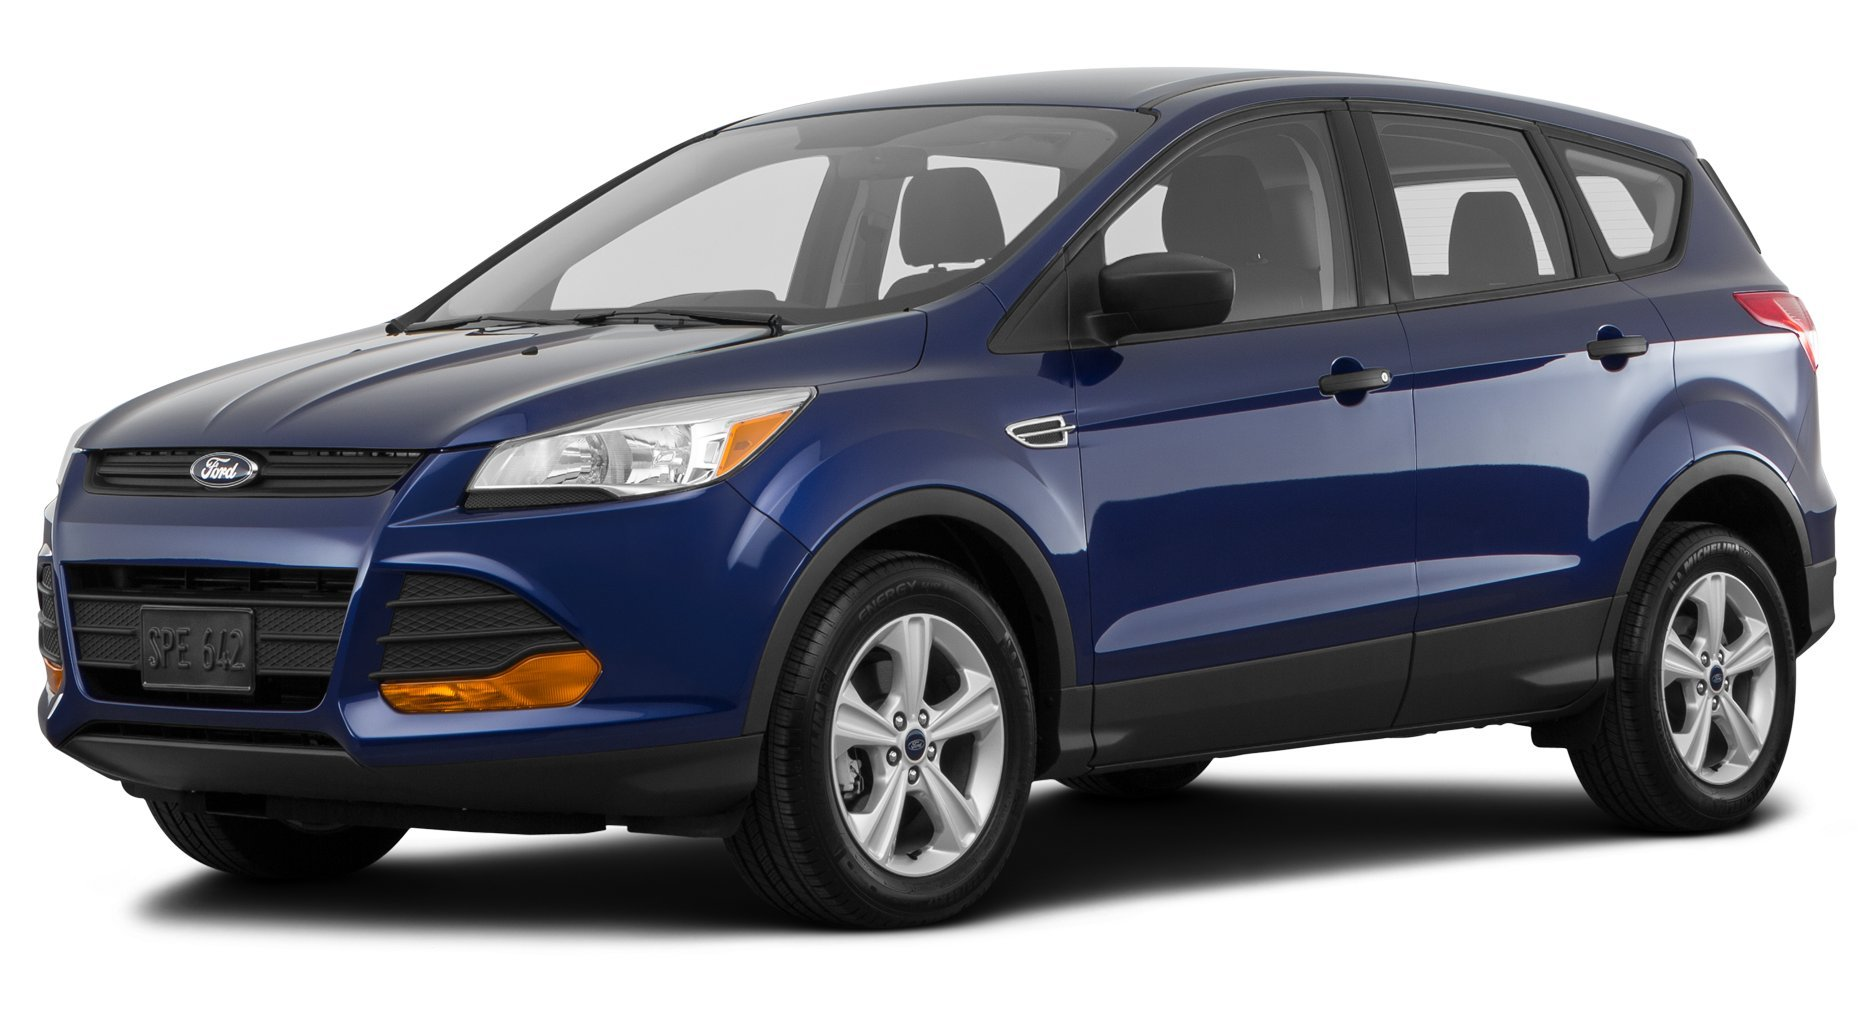 2016 ford escape reviews images and specs vehicles. Black Bedroom Furniture Sets. Home Design Ideas